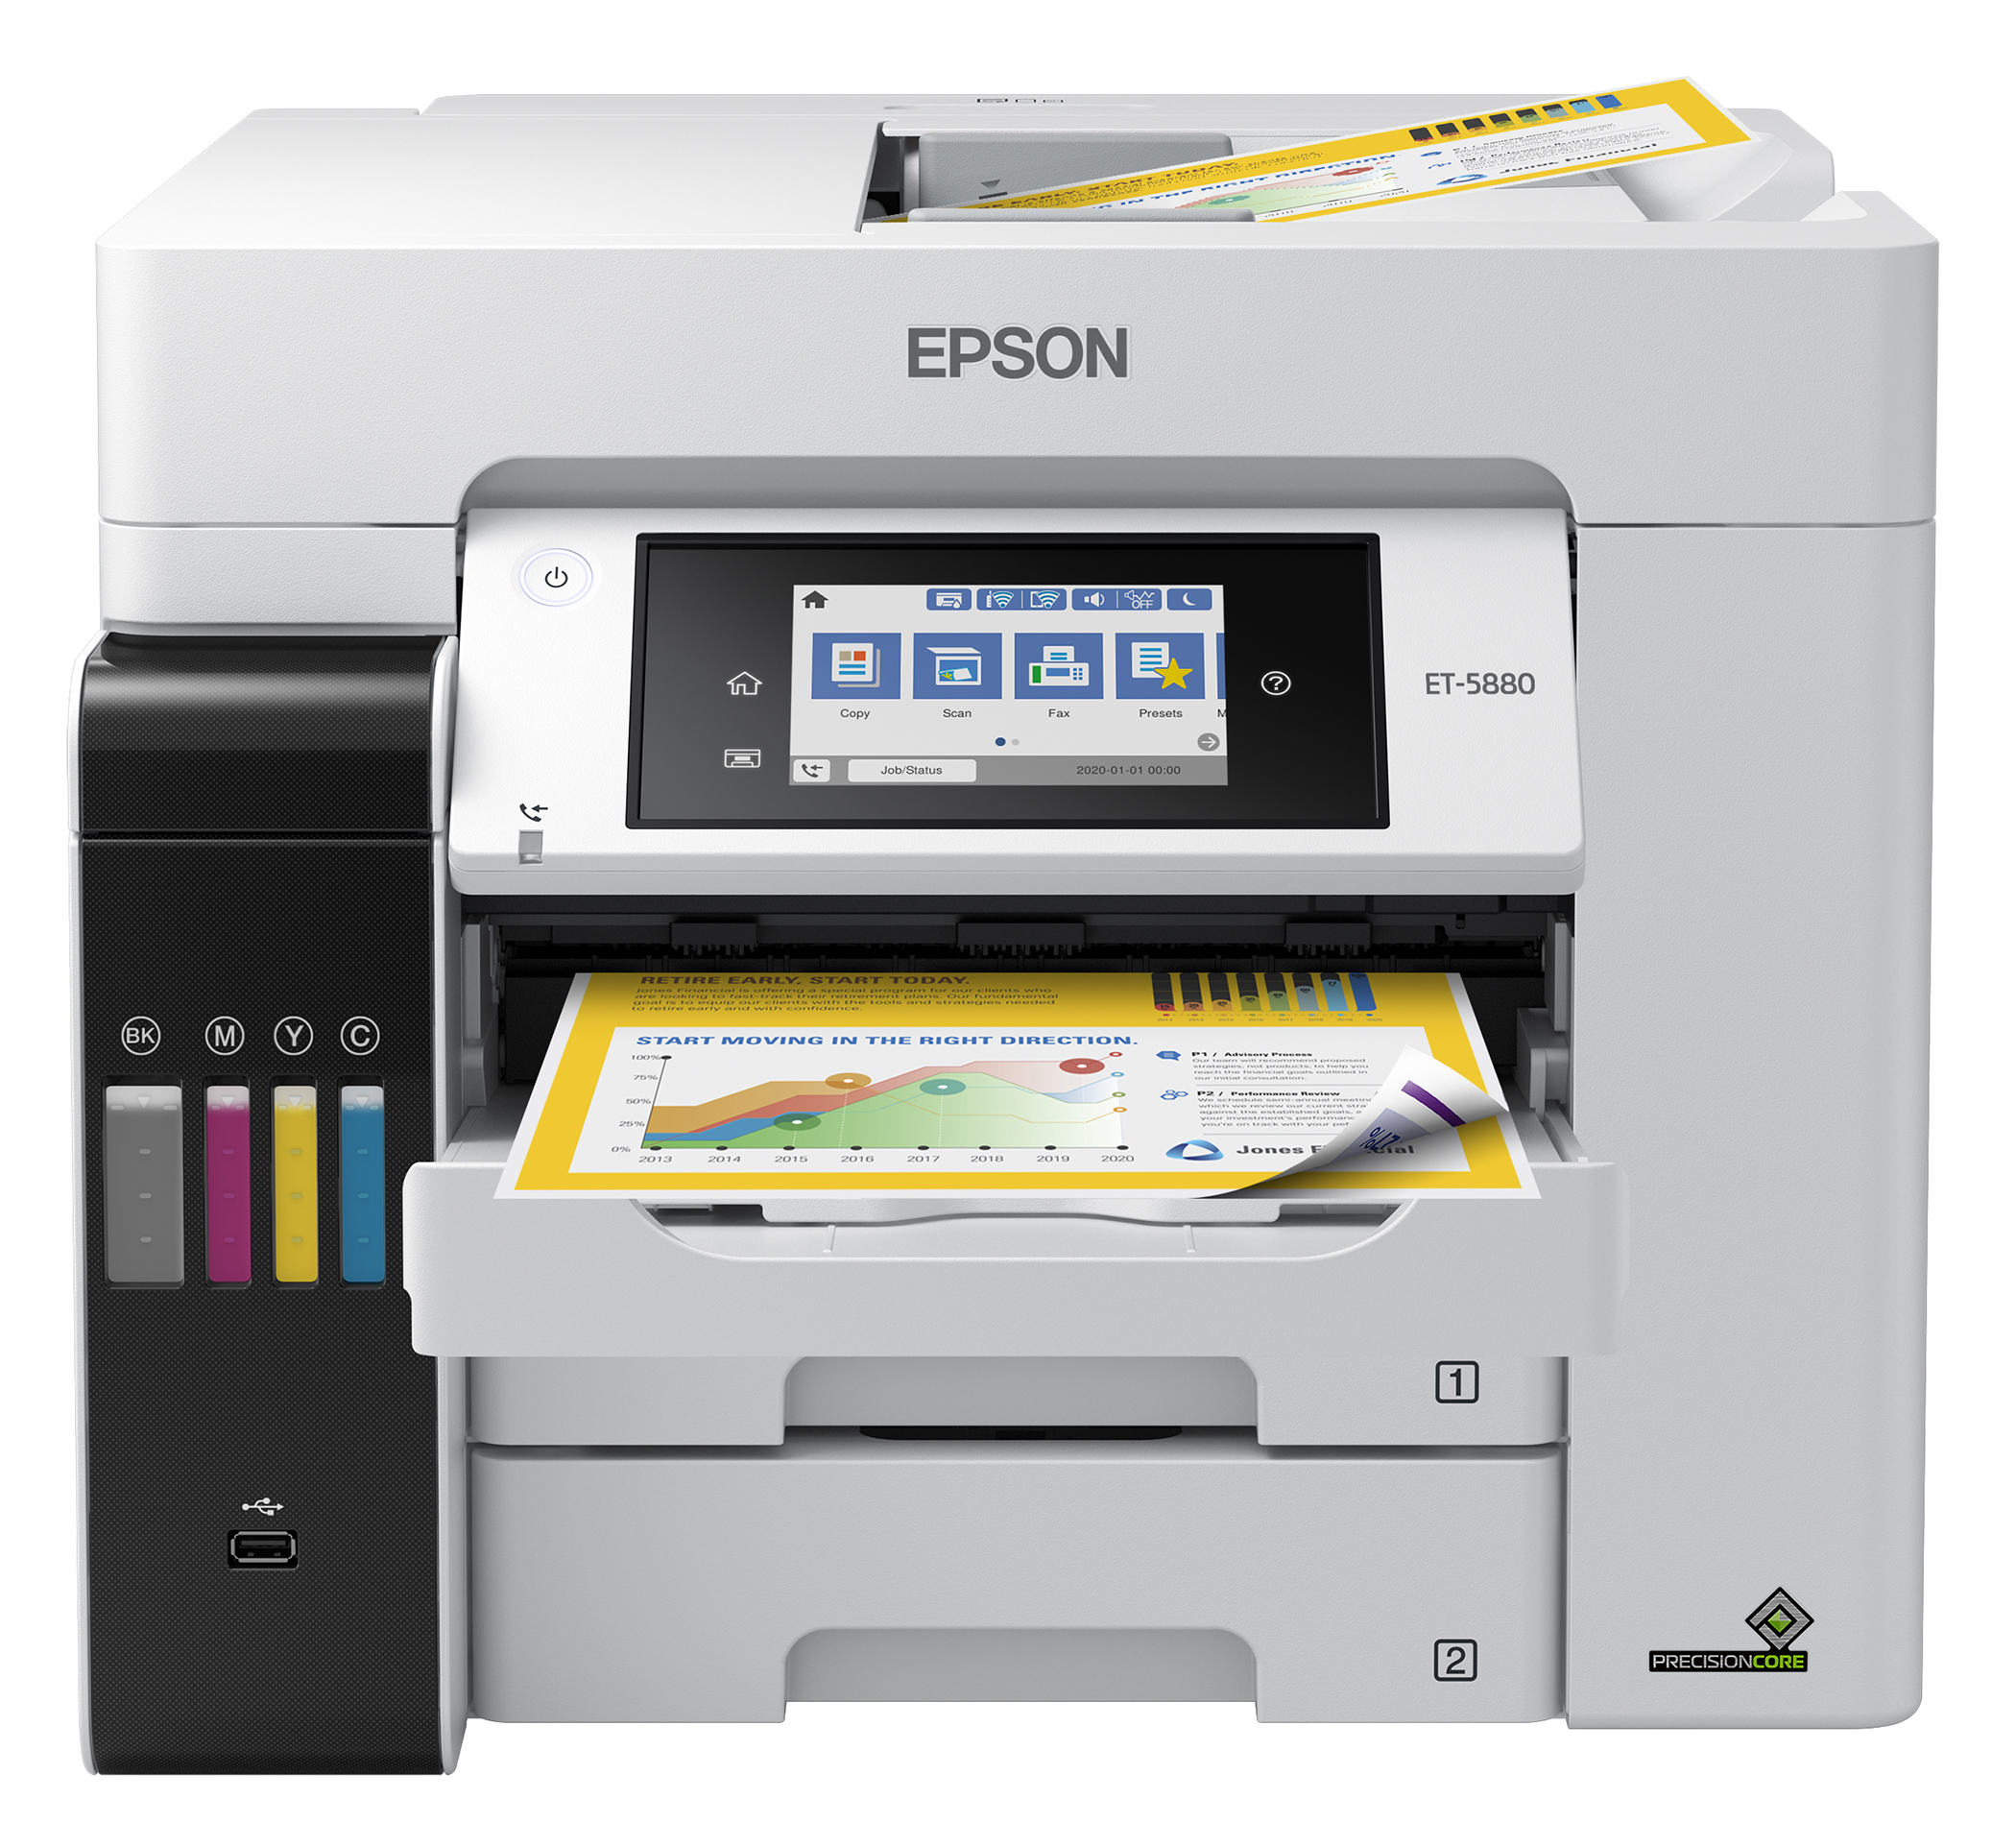 The EcoTank Pro ET-5880 wireless all-in-one printer offers fast cartridge-free printing with easy-to-fill supersized ink tanks, designed to provide reliable, cost-effective, feature-rich printing and PCL/PostScript support(8)